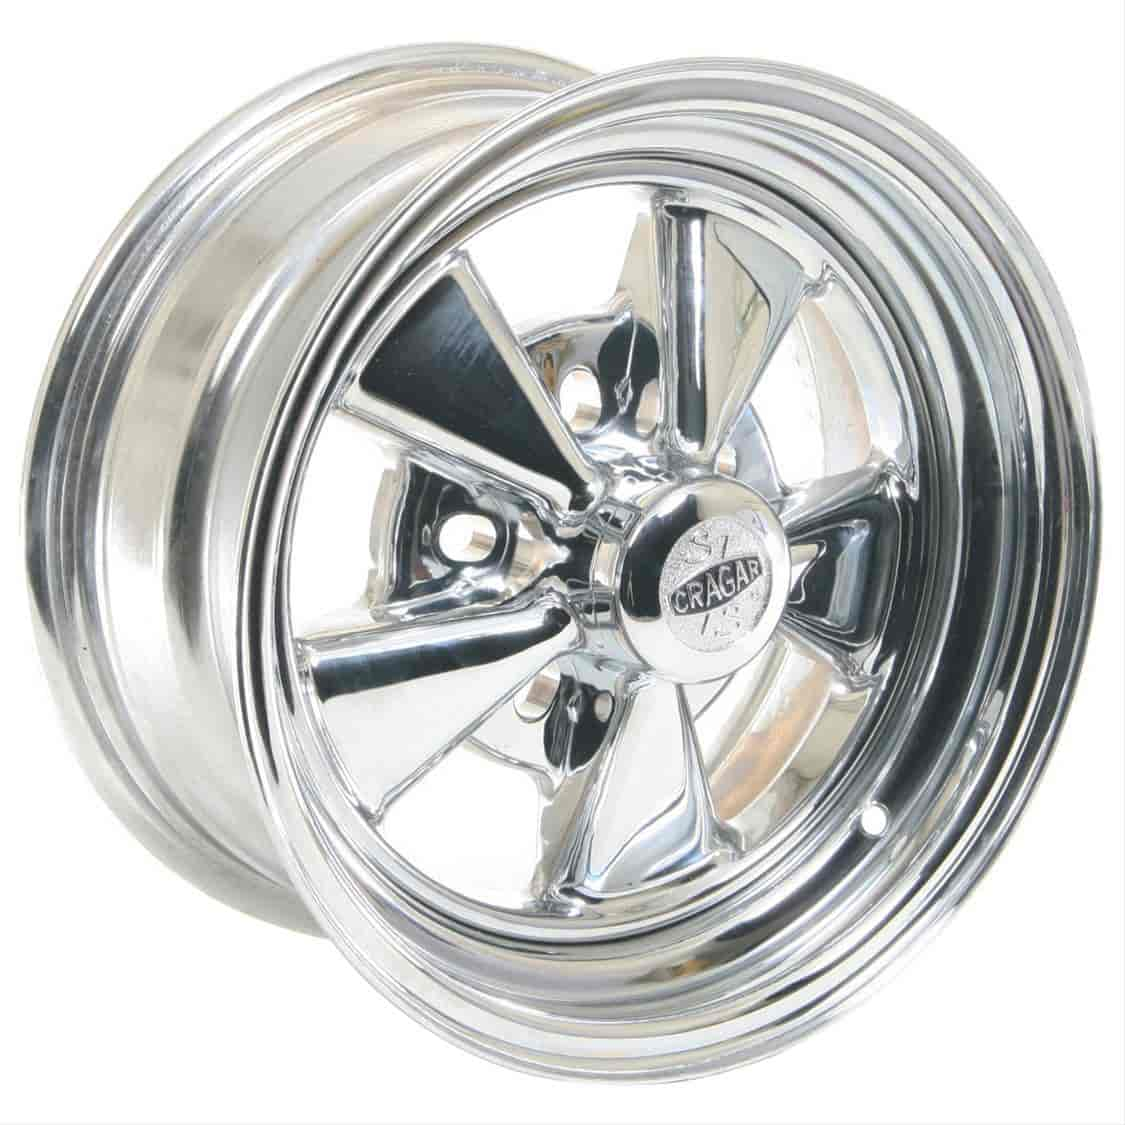 Cragar #61717 - Cragar 08/61 Series S/S Super Sport Wheels